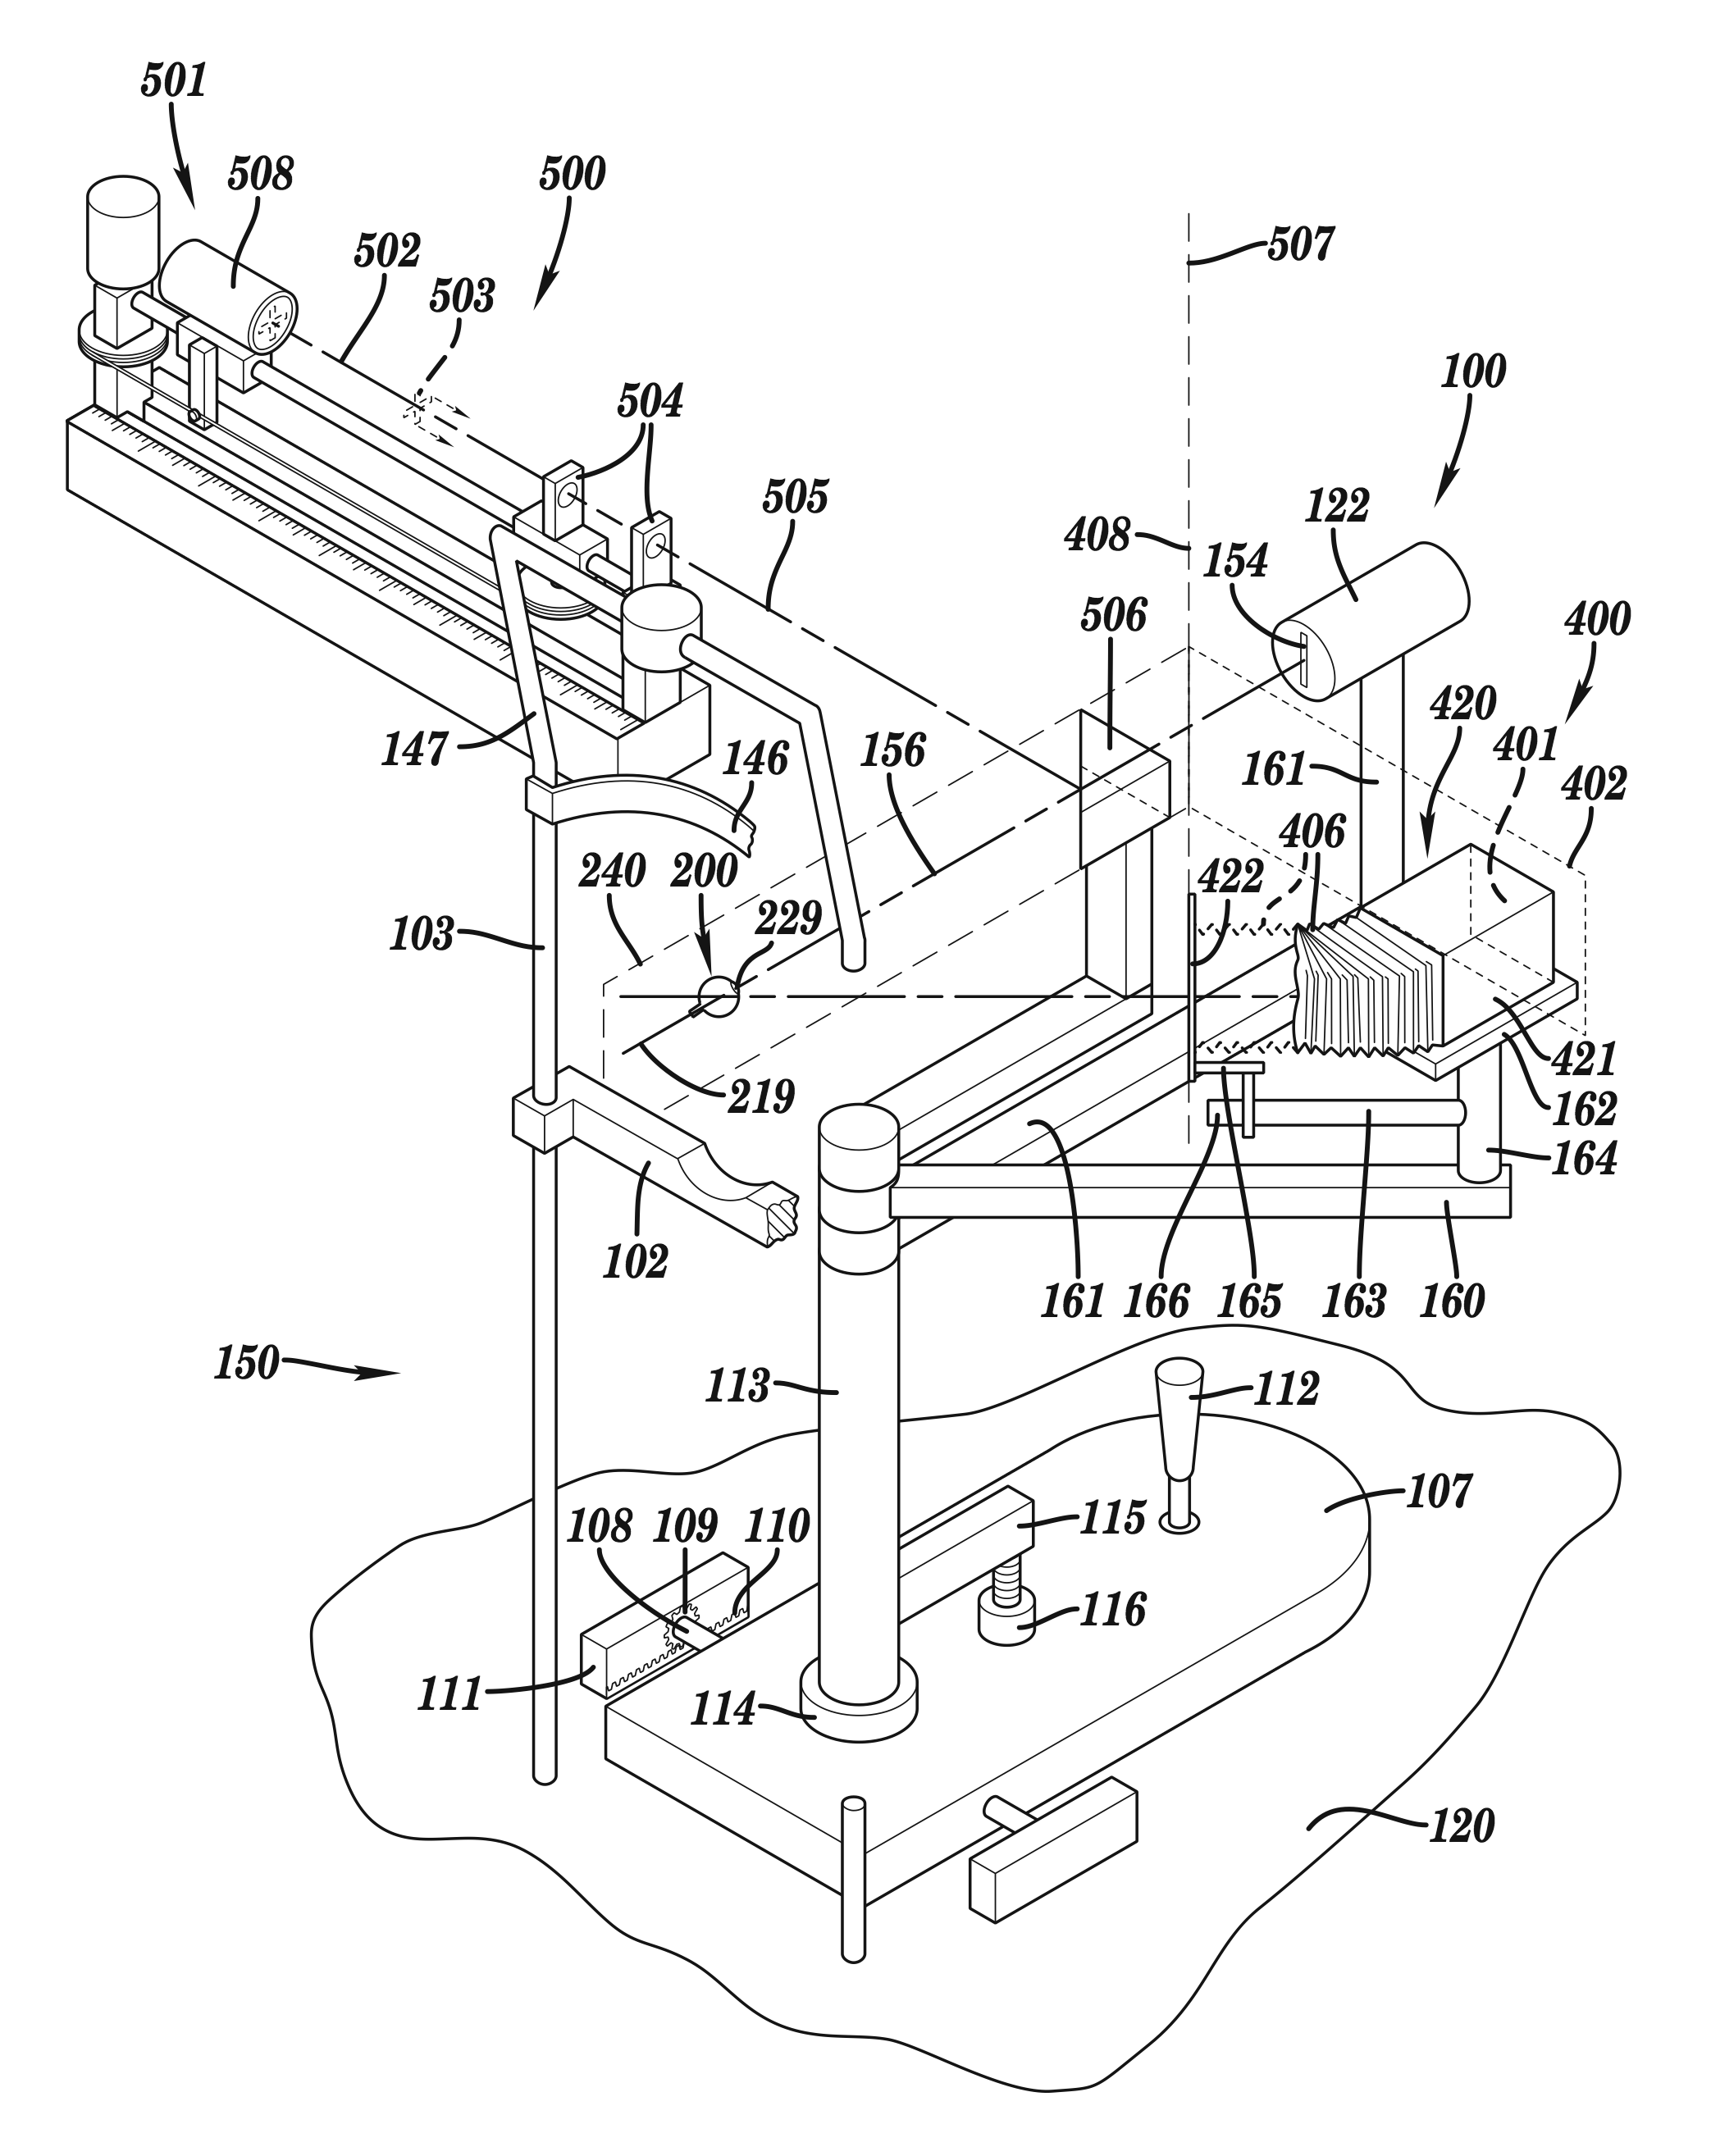 12_ptiserviceco_patent_drawing_mechanical.png